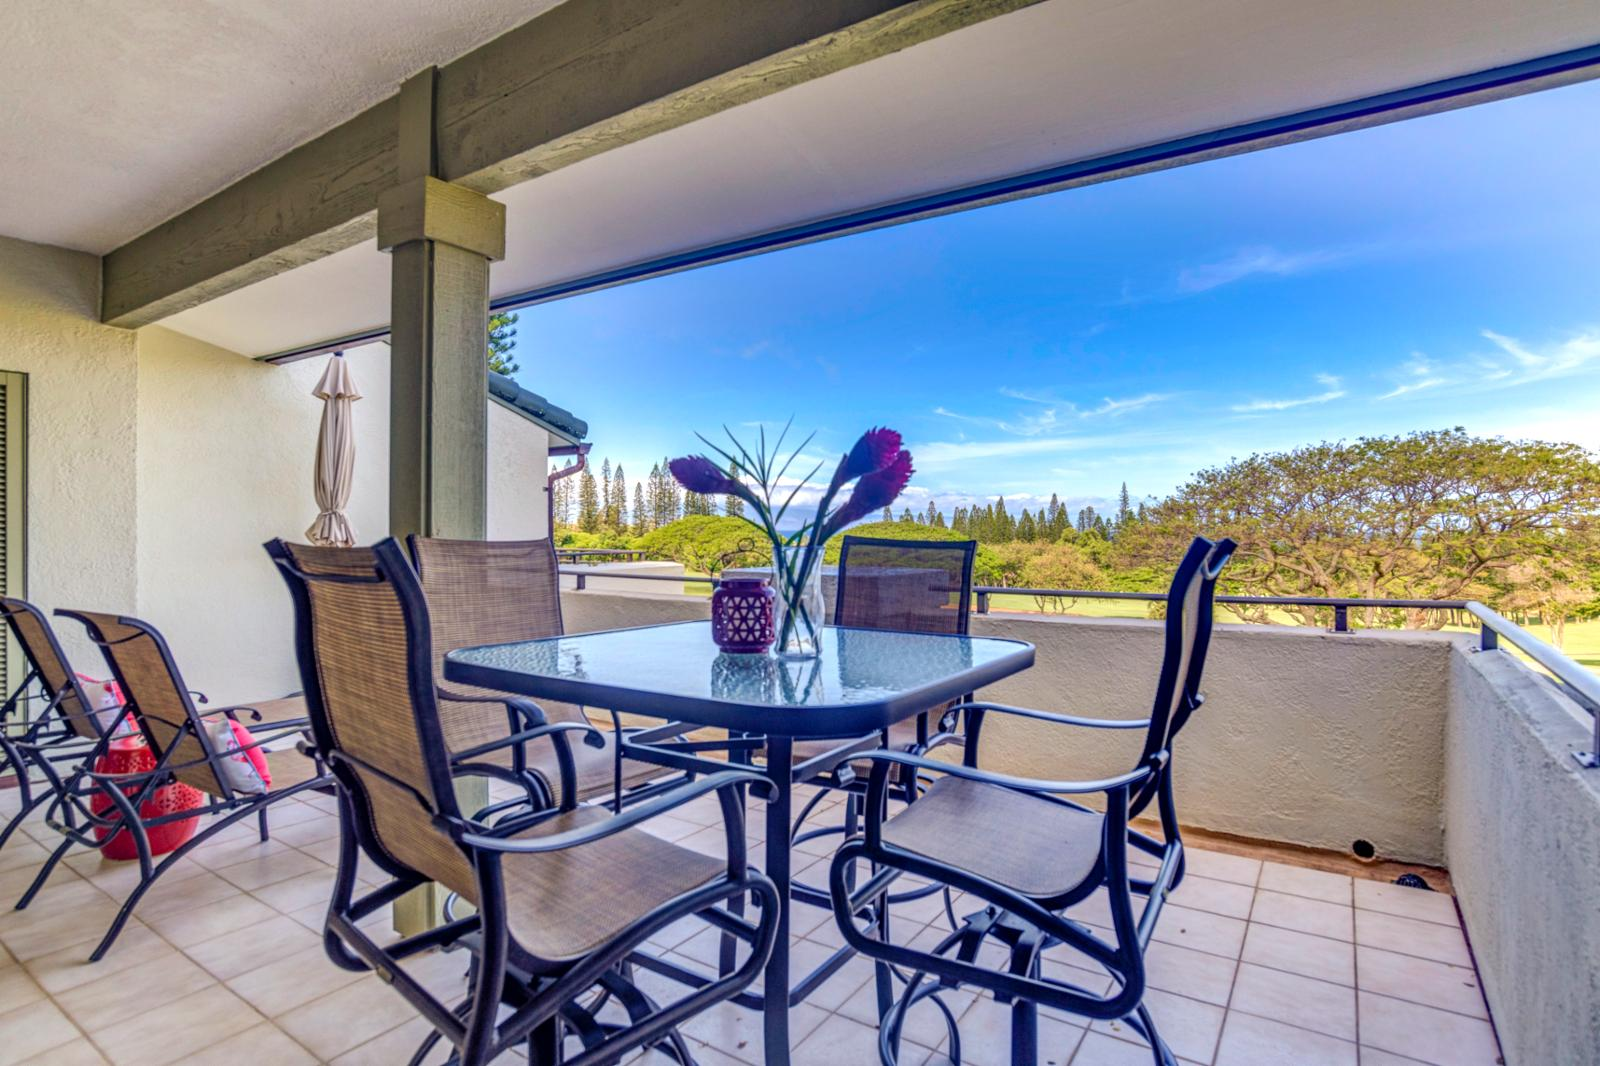 Welcome to Kapalua Golf Villa 16T4 located in the world famous Kapalua Resort!